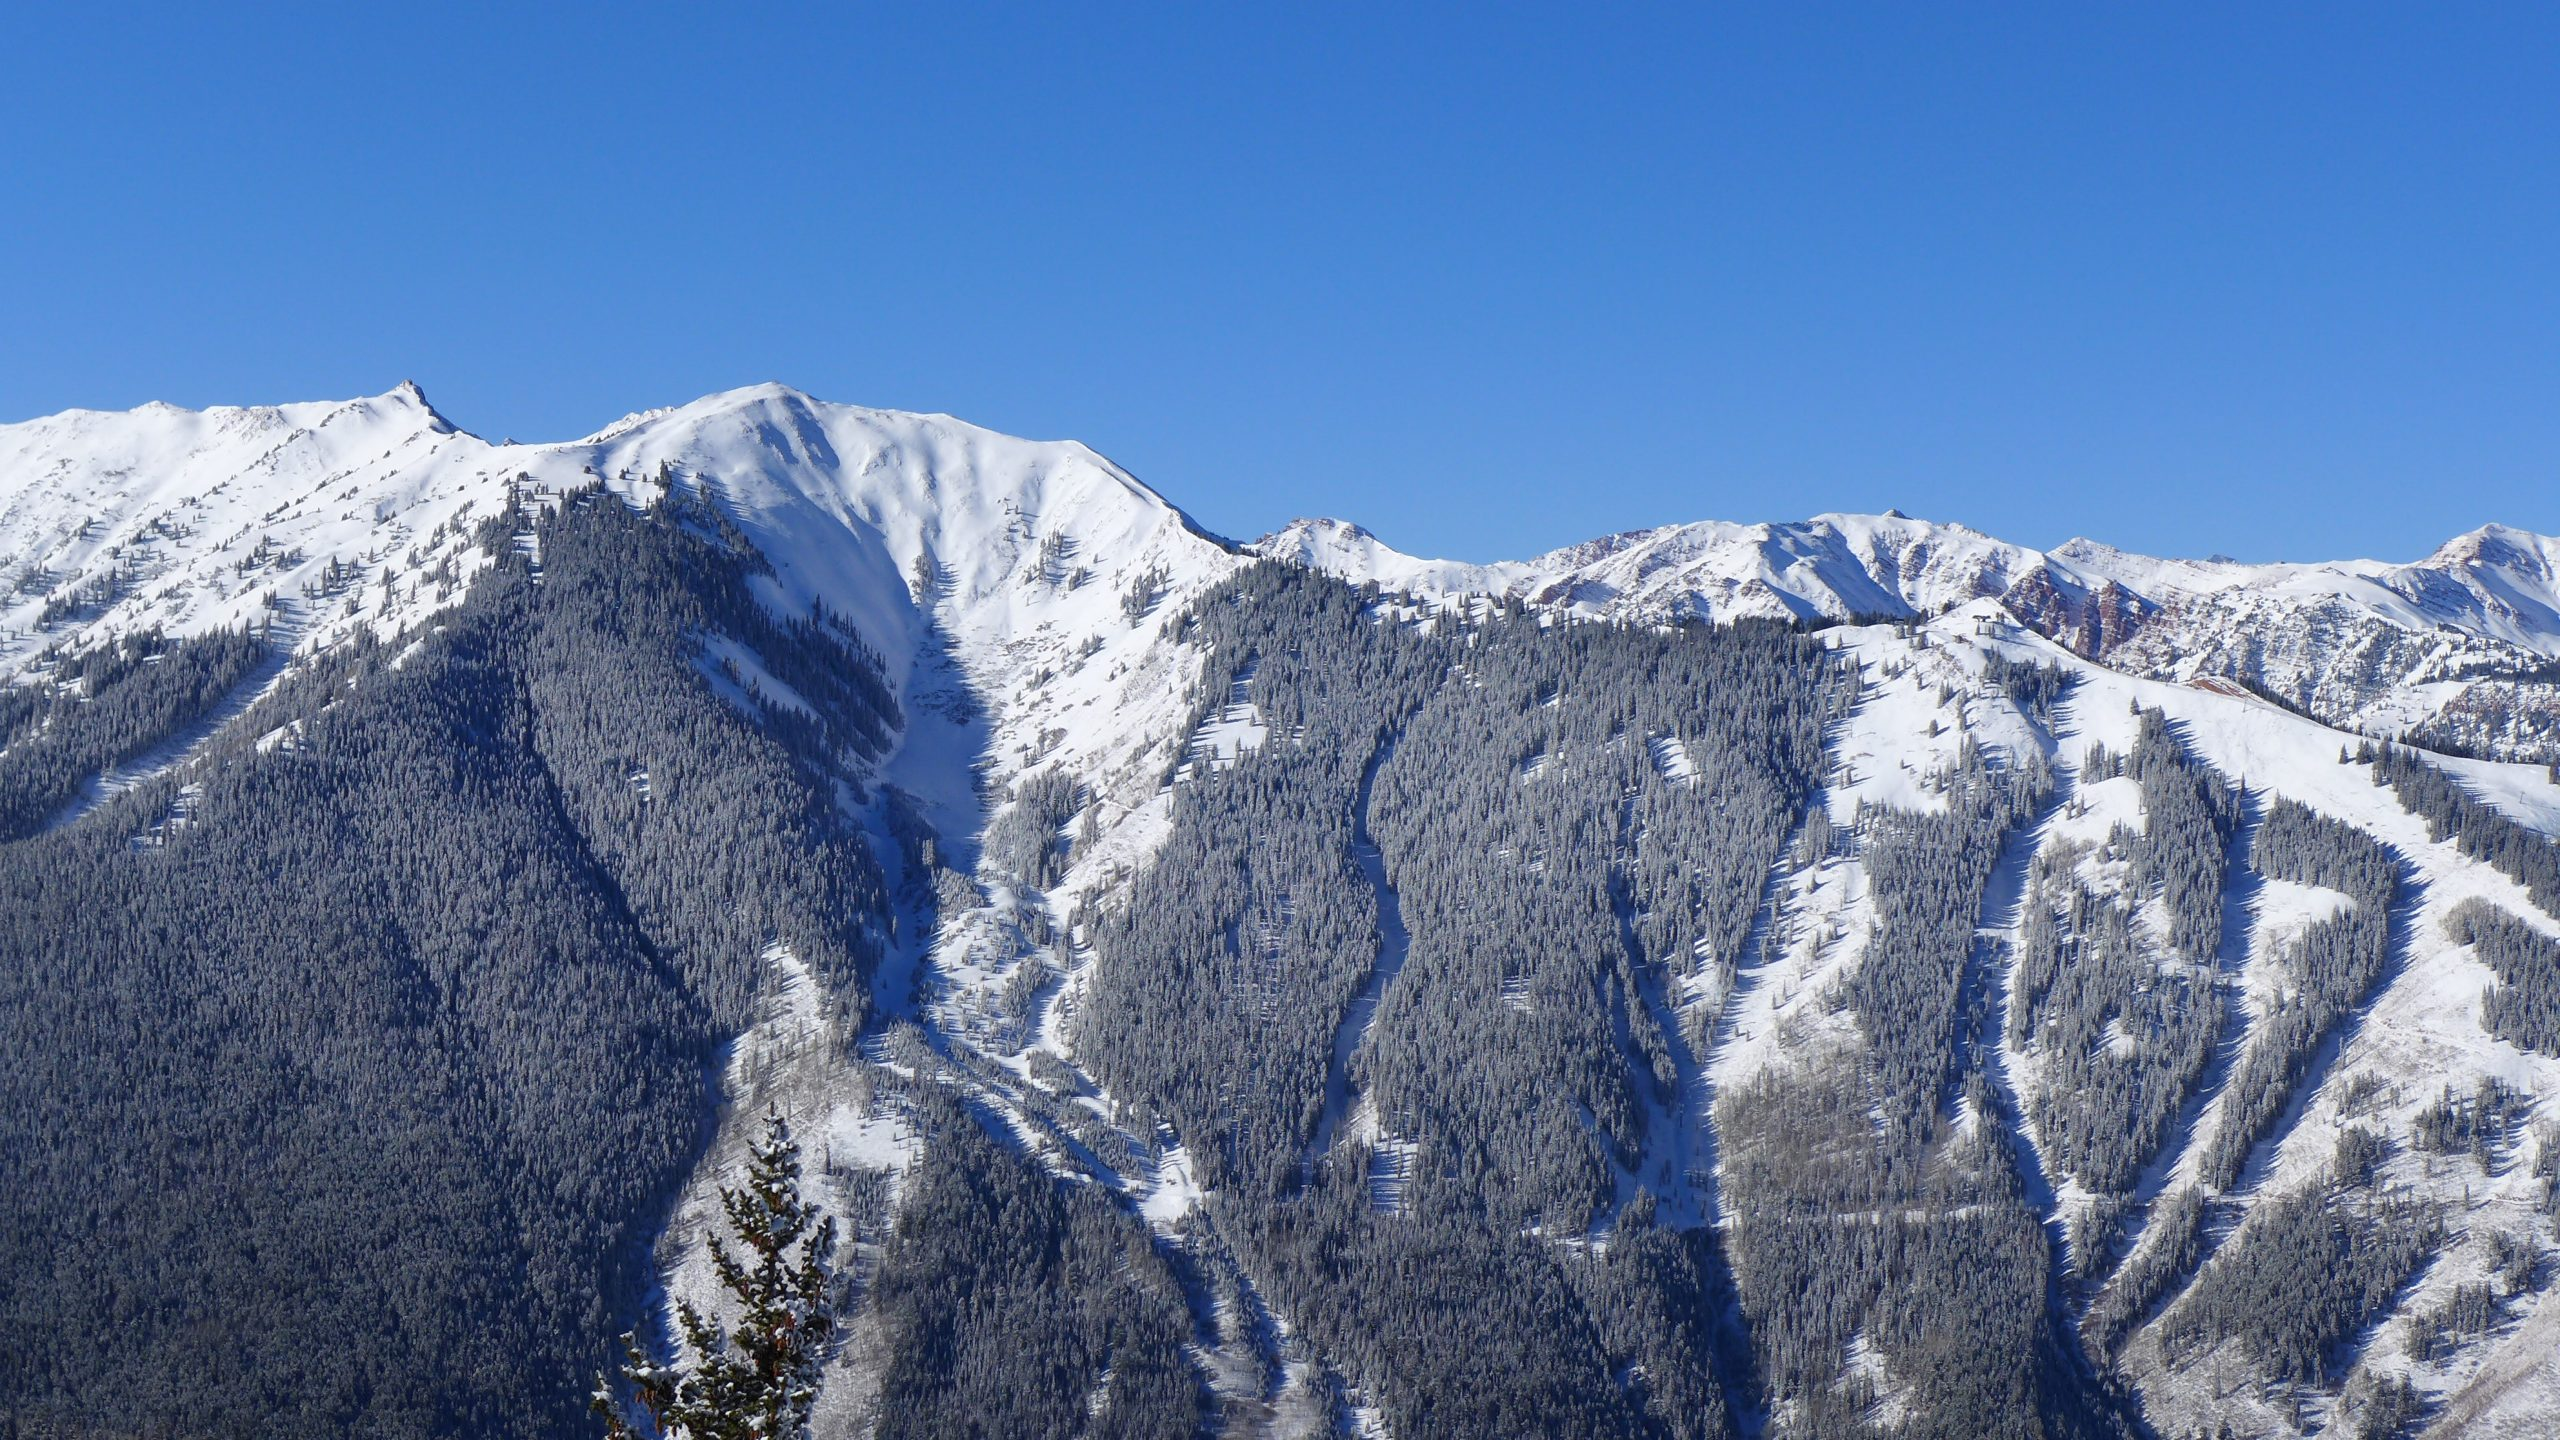 View of Highlands Bowl